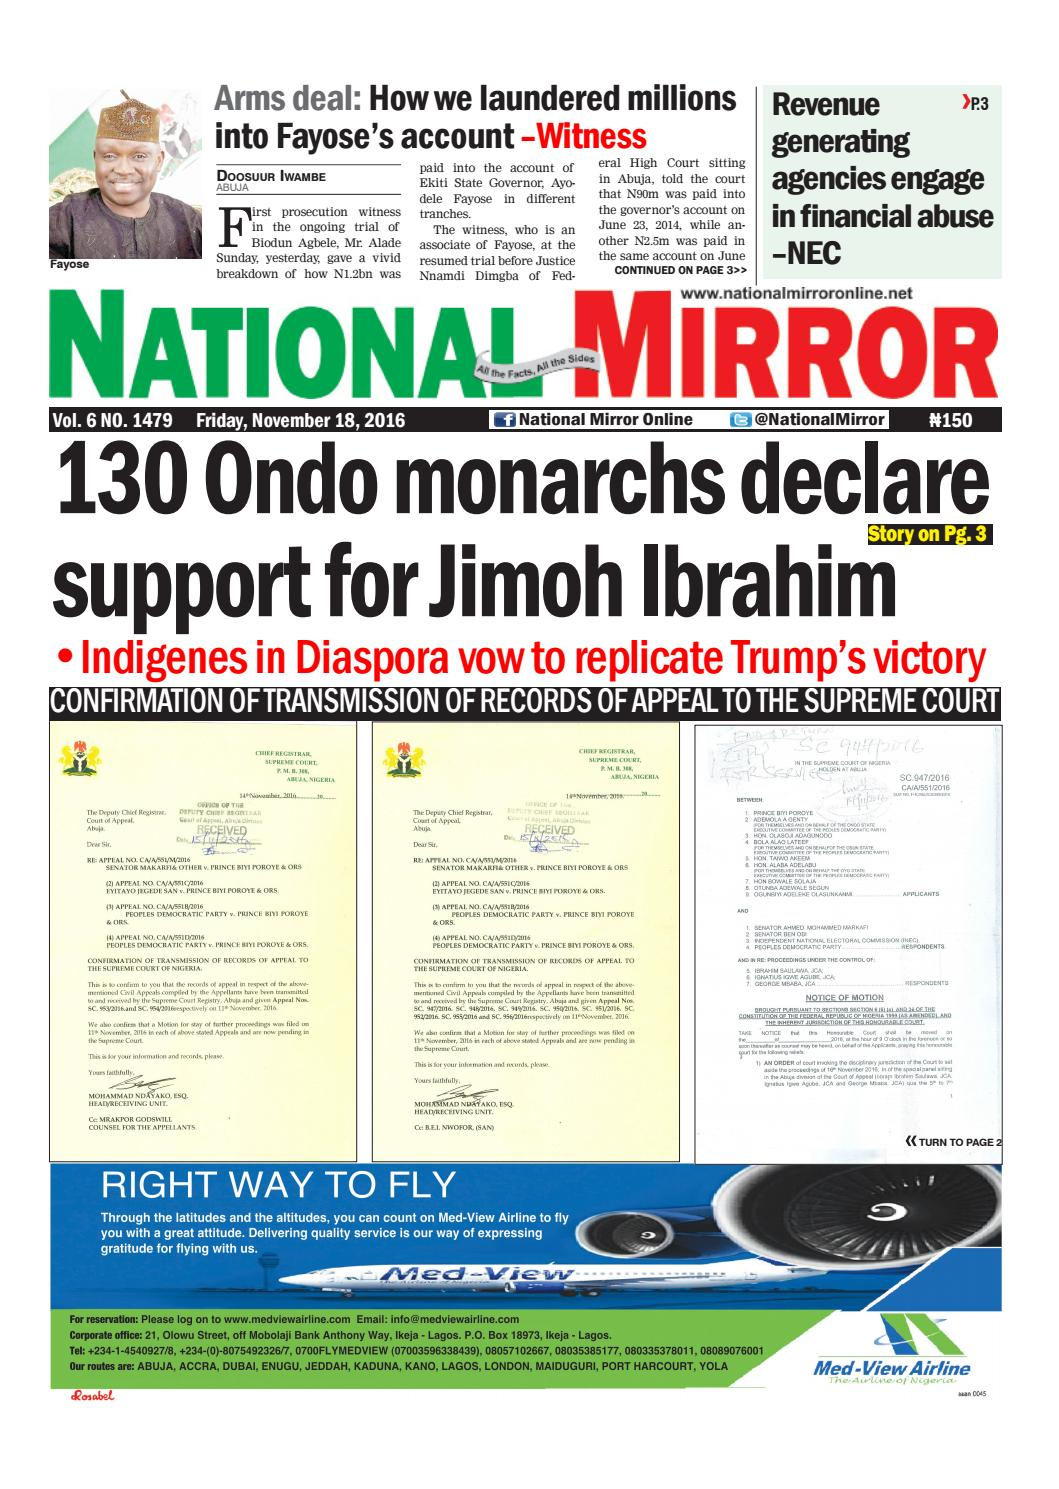 FRIDAY'S E-Mirror Online by GLOBAL MEDIA MIRROR LIMITED - issuu